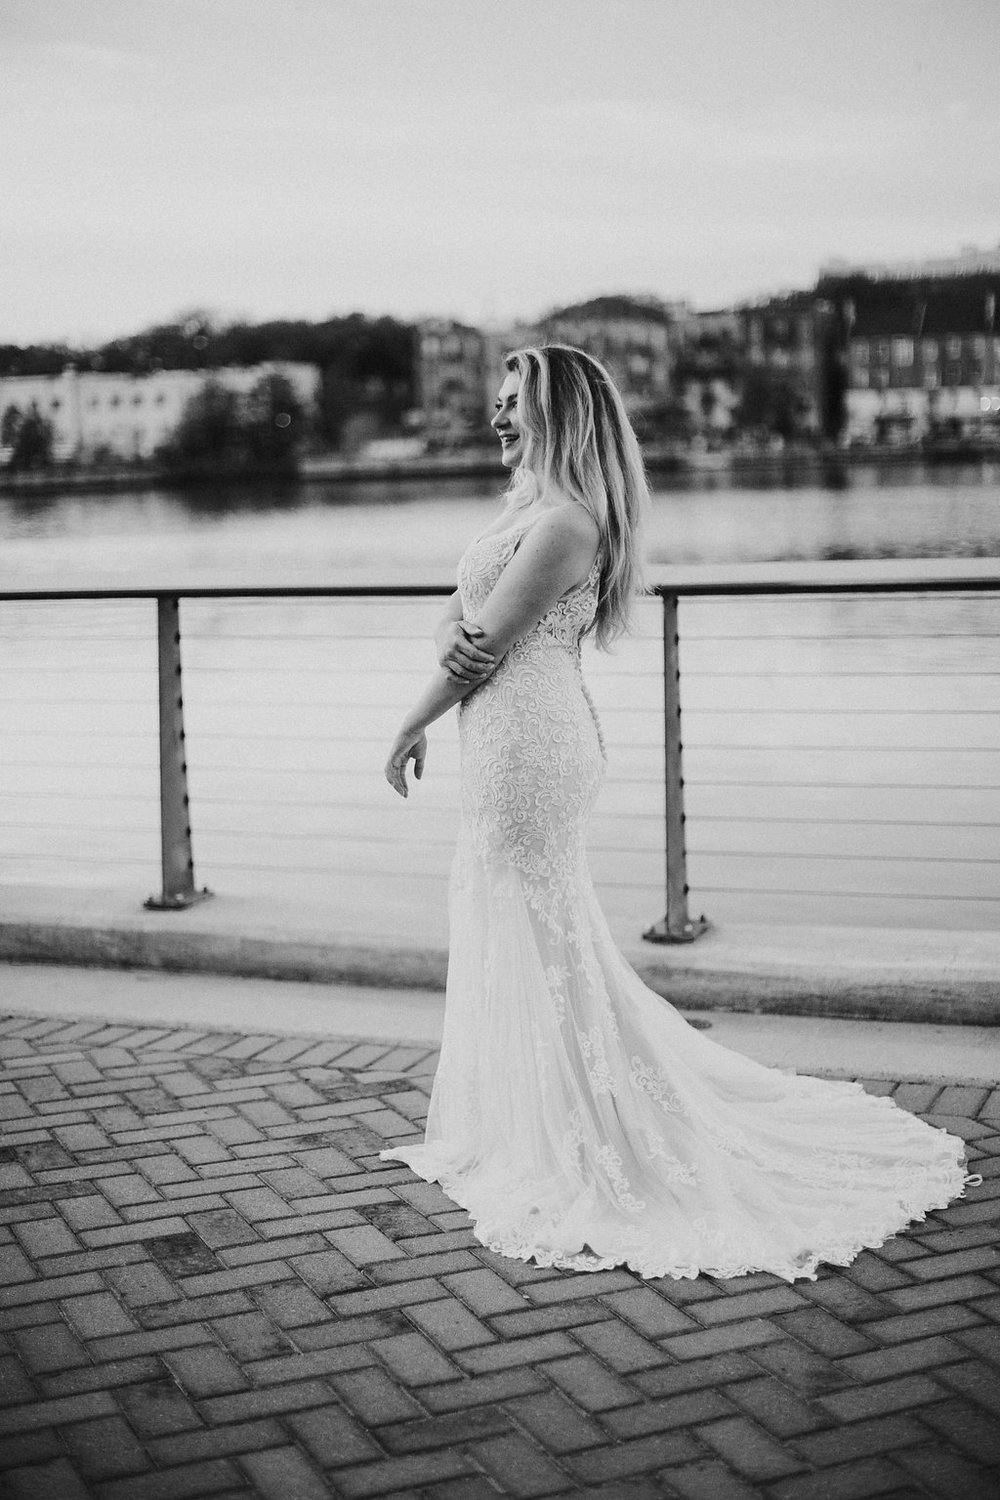 danielle-george-photography-tara-rebecca-ingram-maggie-sottero-ivory-and-beau-bridal-boutique-savannah-river-savannah-wedding-river-wedding-southern-wedding-southern-bride-adele-amelia-veil-9.JPG